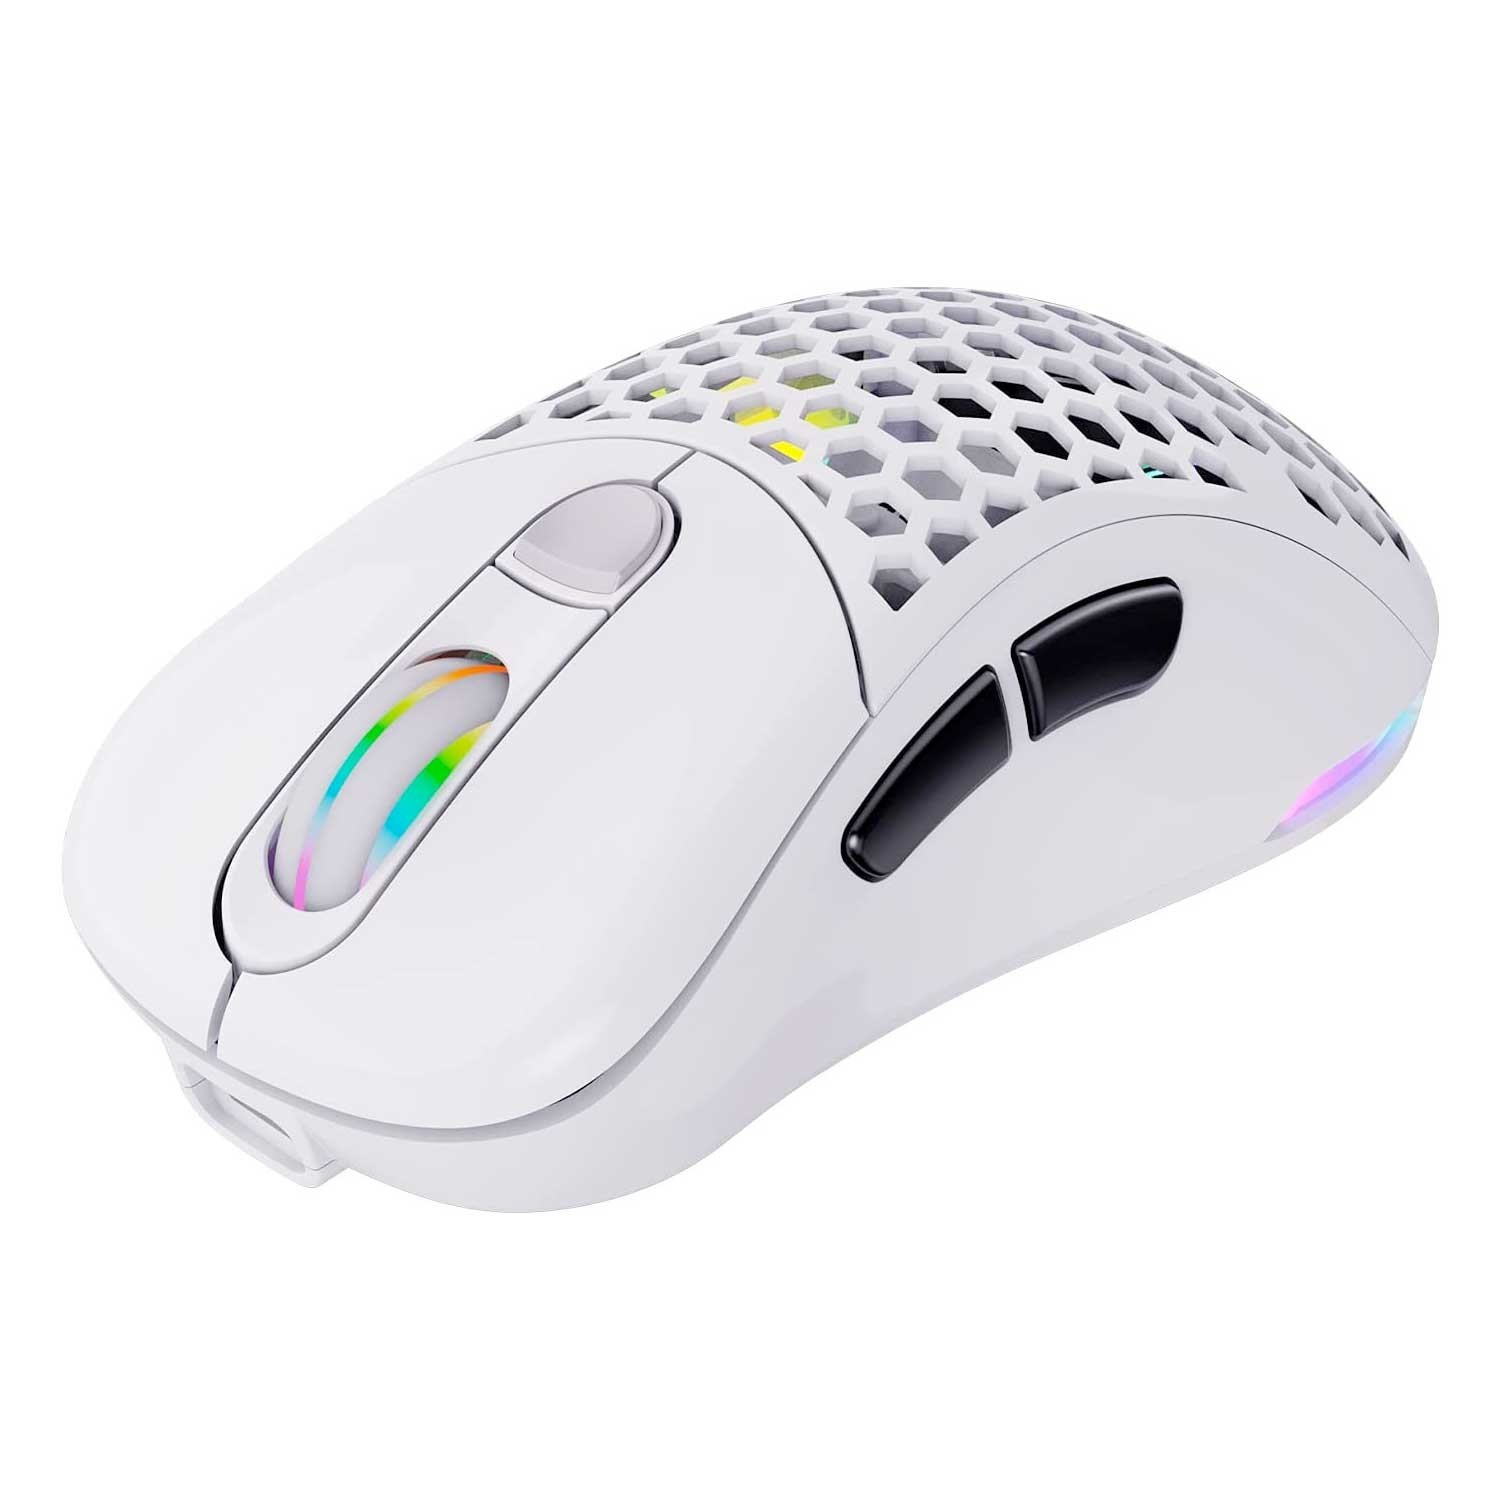 Mouse VSG Gamer Inalámbrico Aquila Fly Blanco Mate